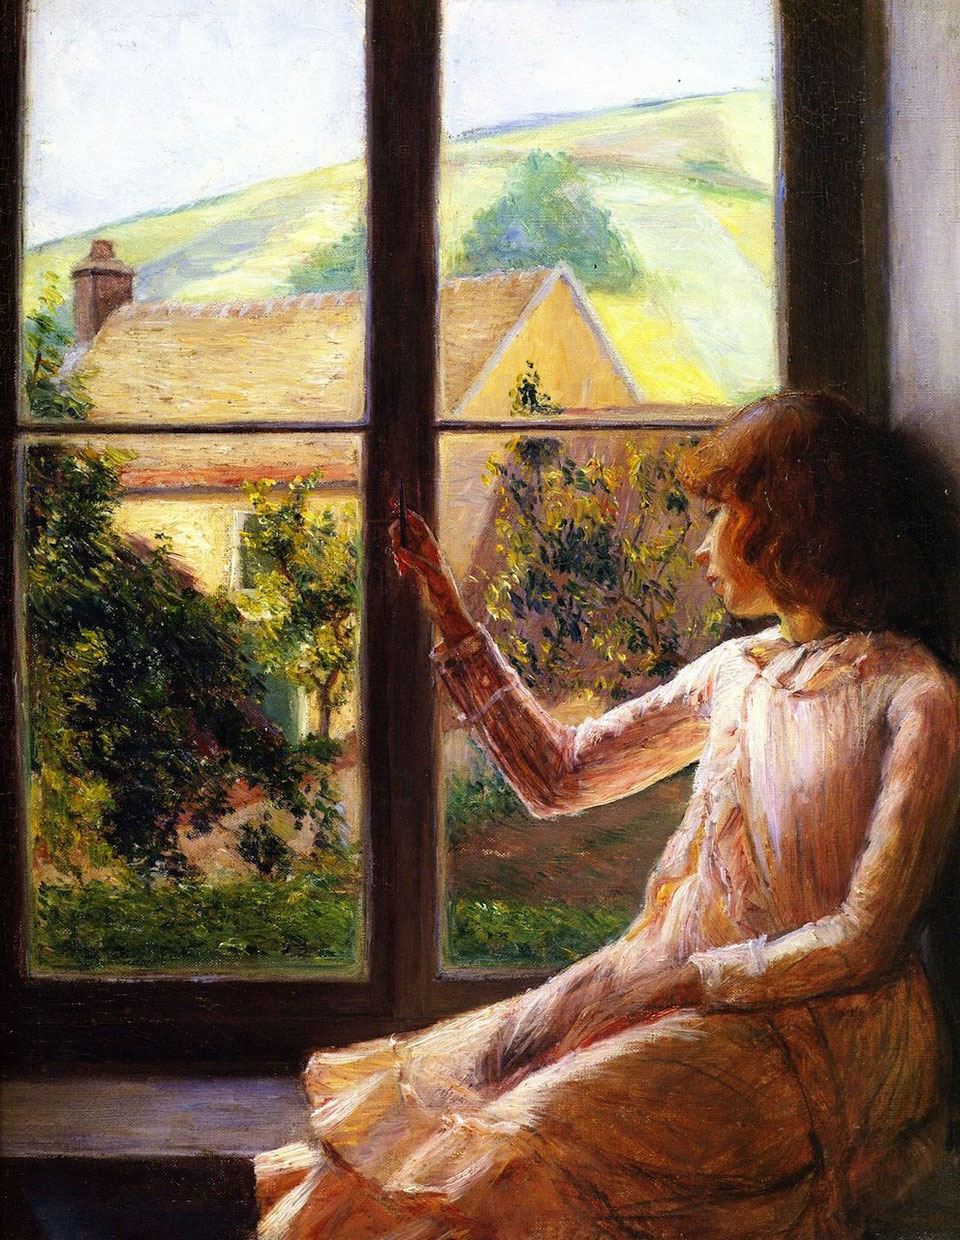 A young girl looks out of a window.